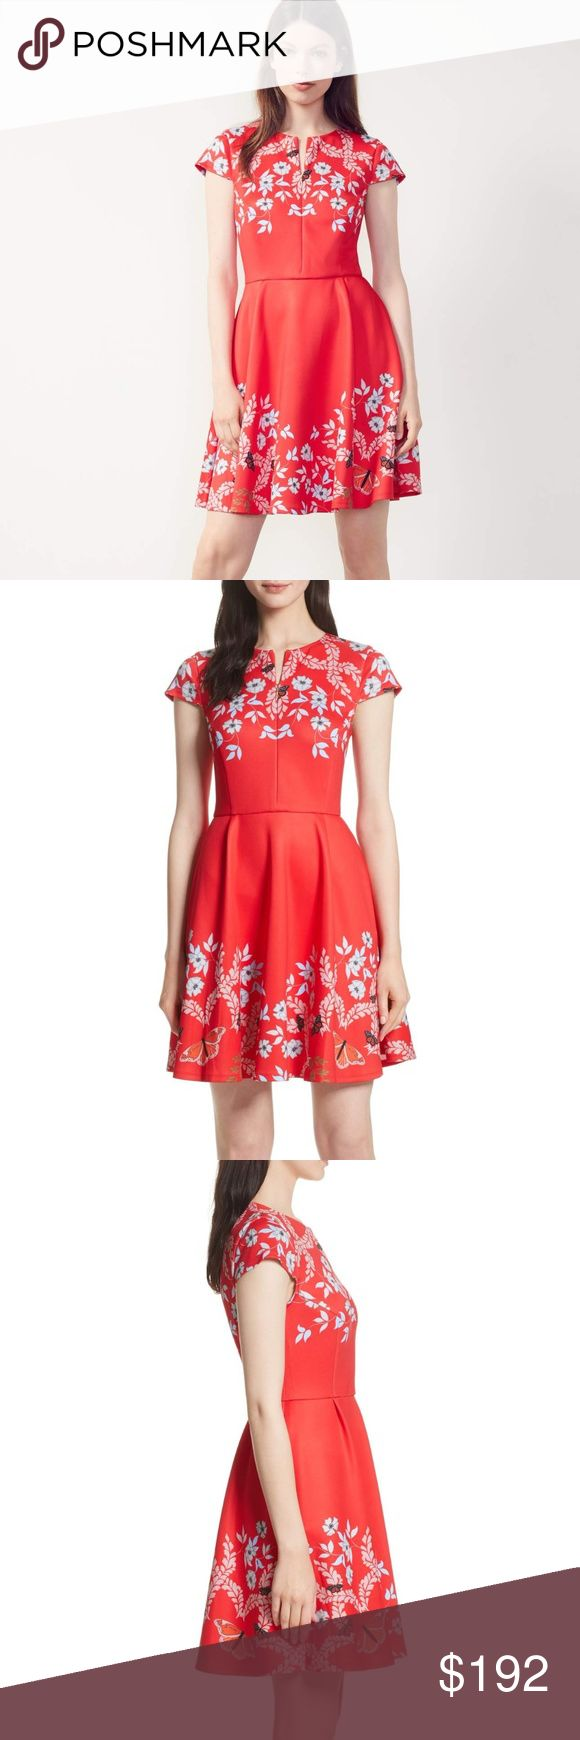 """Ted Baker Saydi Kyoto Floral Skater Dress NWT Ted Baker London Bright Red Saydi Kyoto Floral Skater Size 1 (US 4) Bust 33"""" Waist 26"""" UPC: 5054787611046 Sleeve Style:Cap Sleeve Size Type:Regular Pattern:Floral Size (Women's):4 Country/Region of Manufacture:China Material:Polyester blend Style:Fit & Flare, Skater Dress Occasion:Casual Color: Bright Red Dress Length:Short Ted Baker Dresses"""